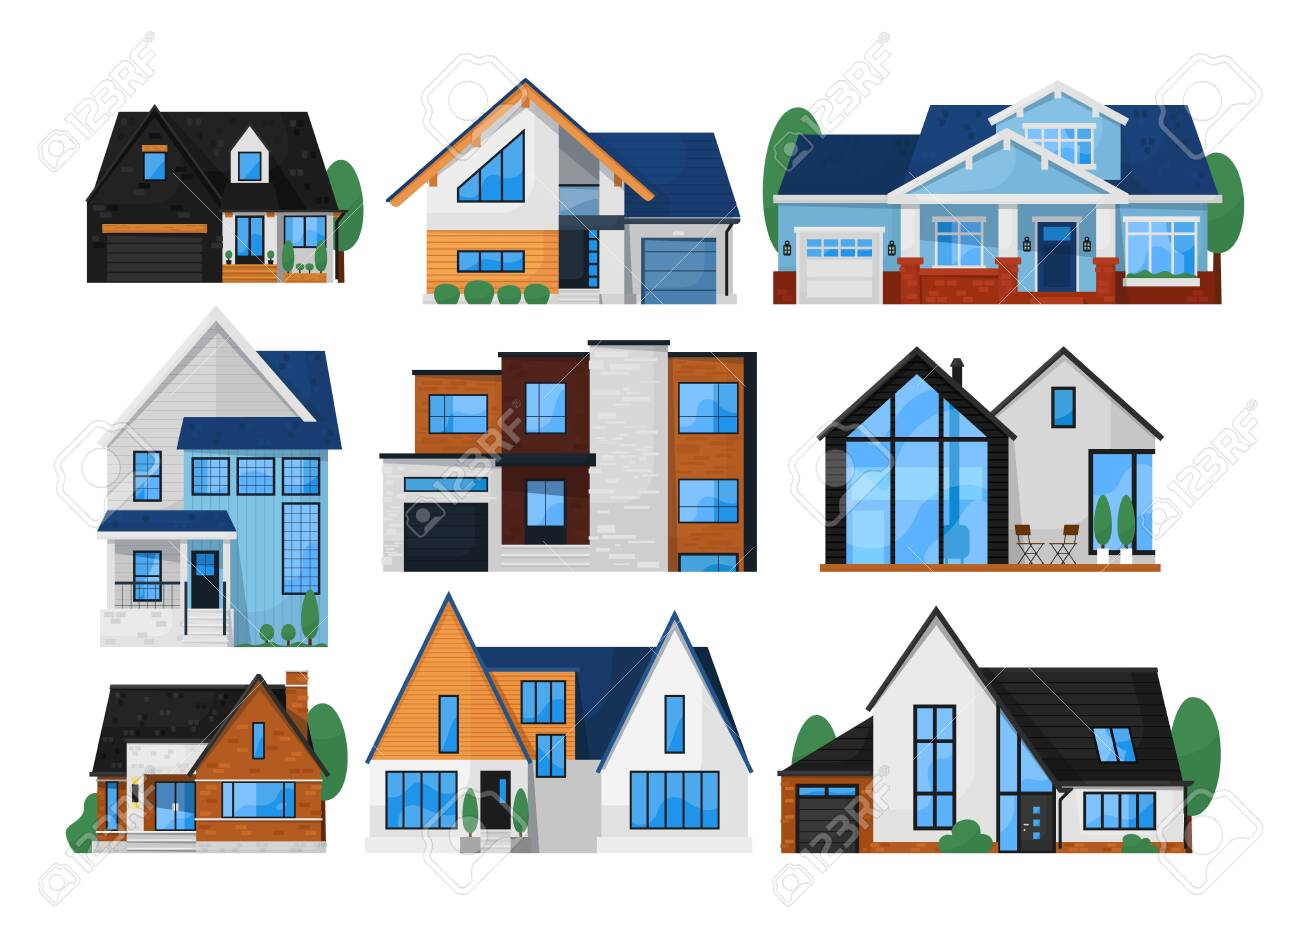 House exterior front set. Isolated residential city building icon. Modern cottage house exterior front view collection. Vector home architecture - 151373534